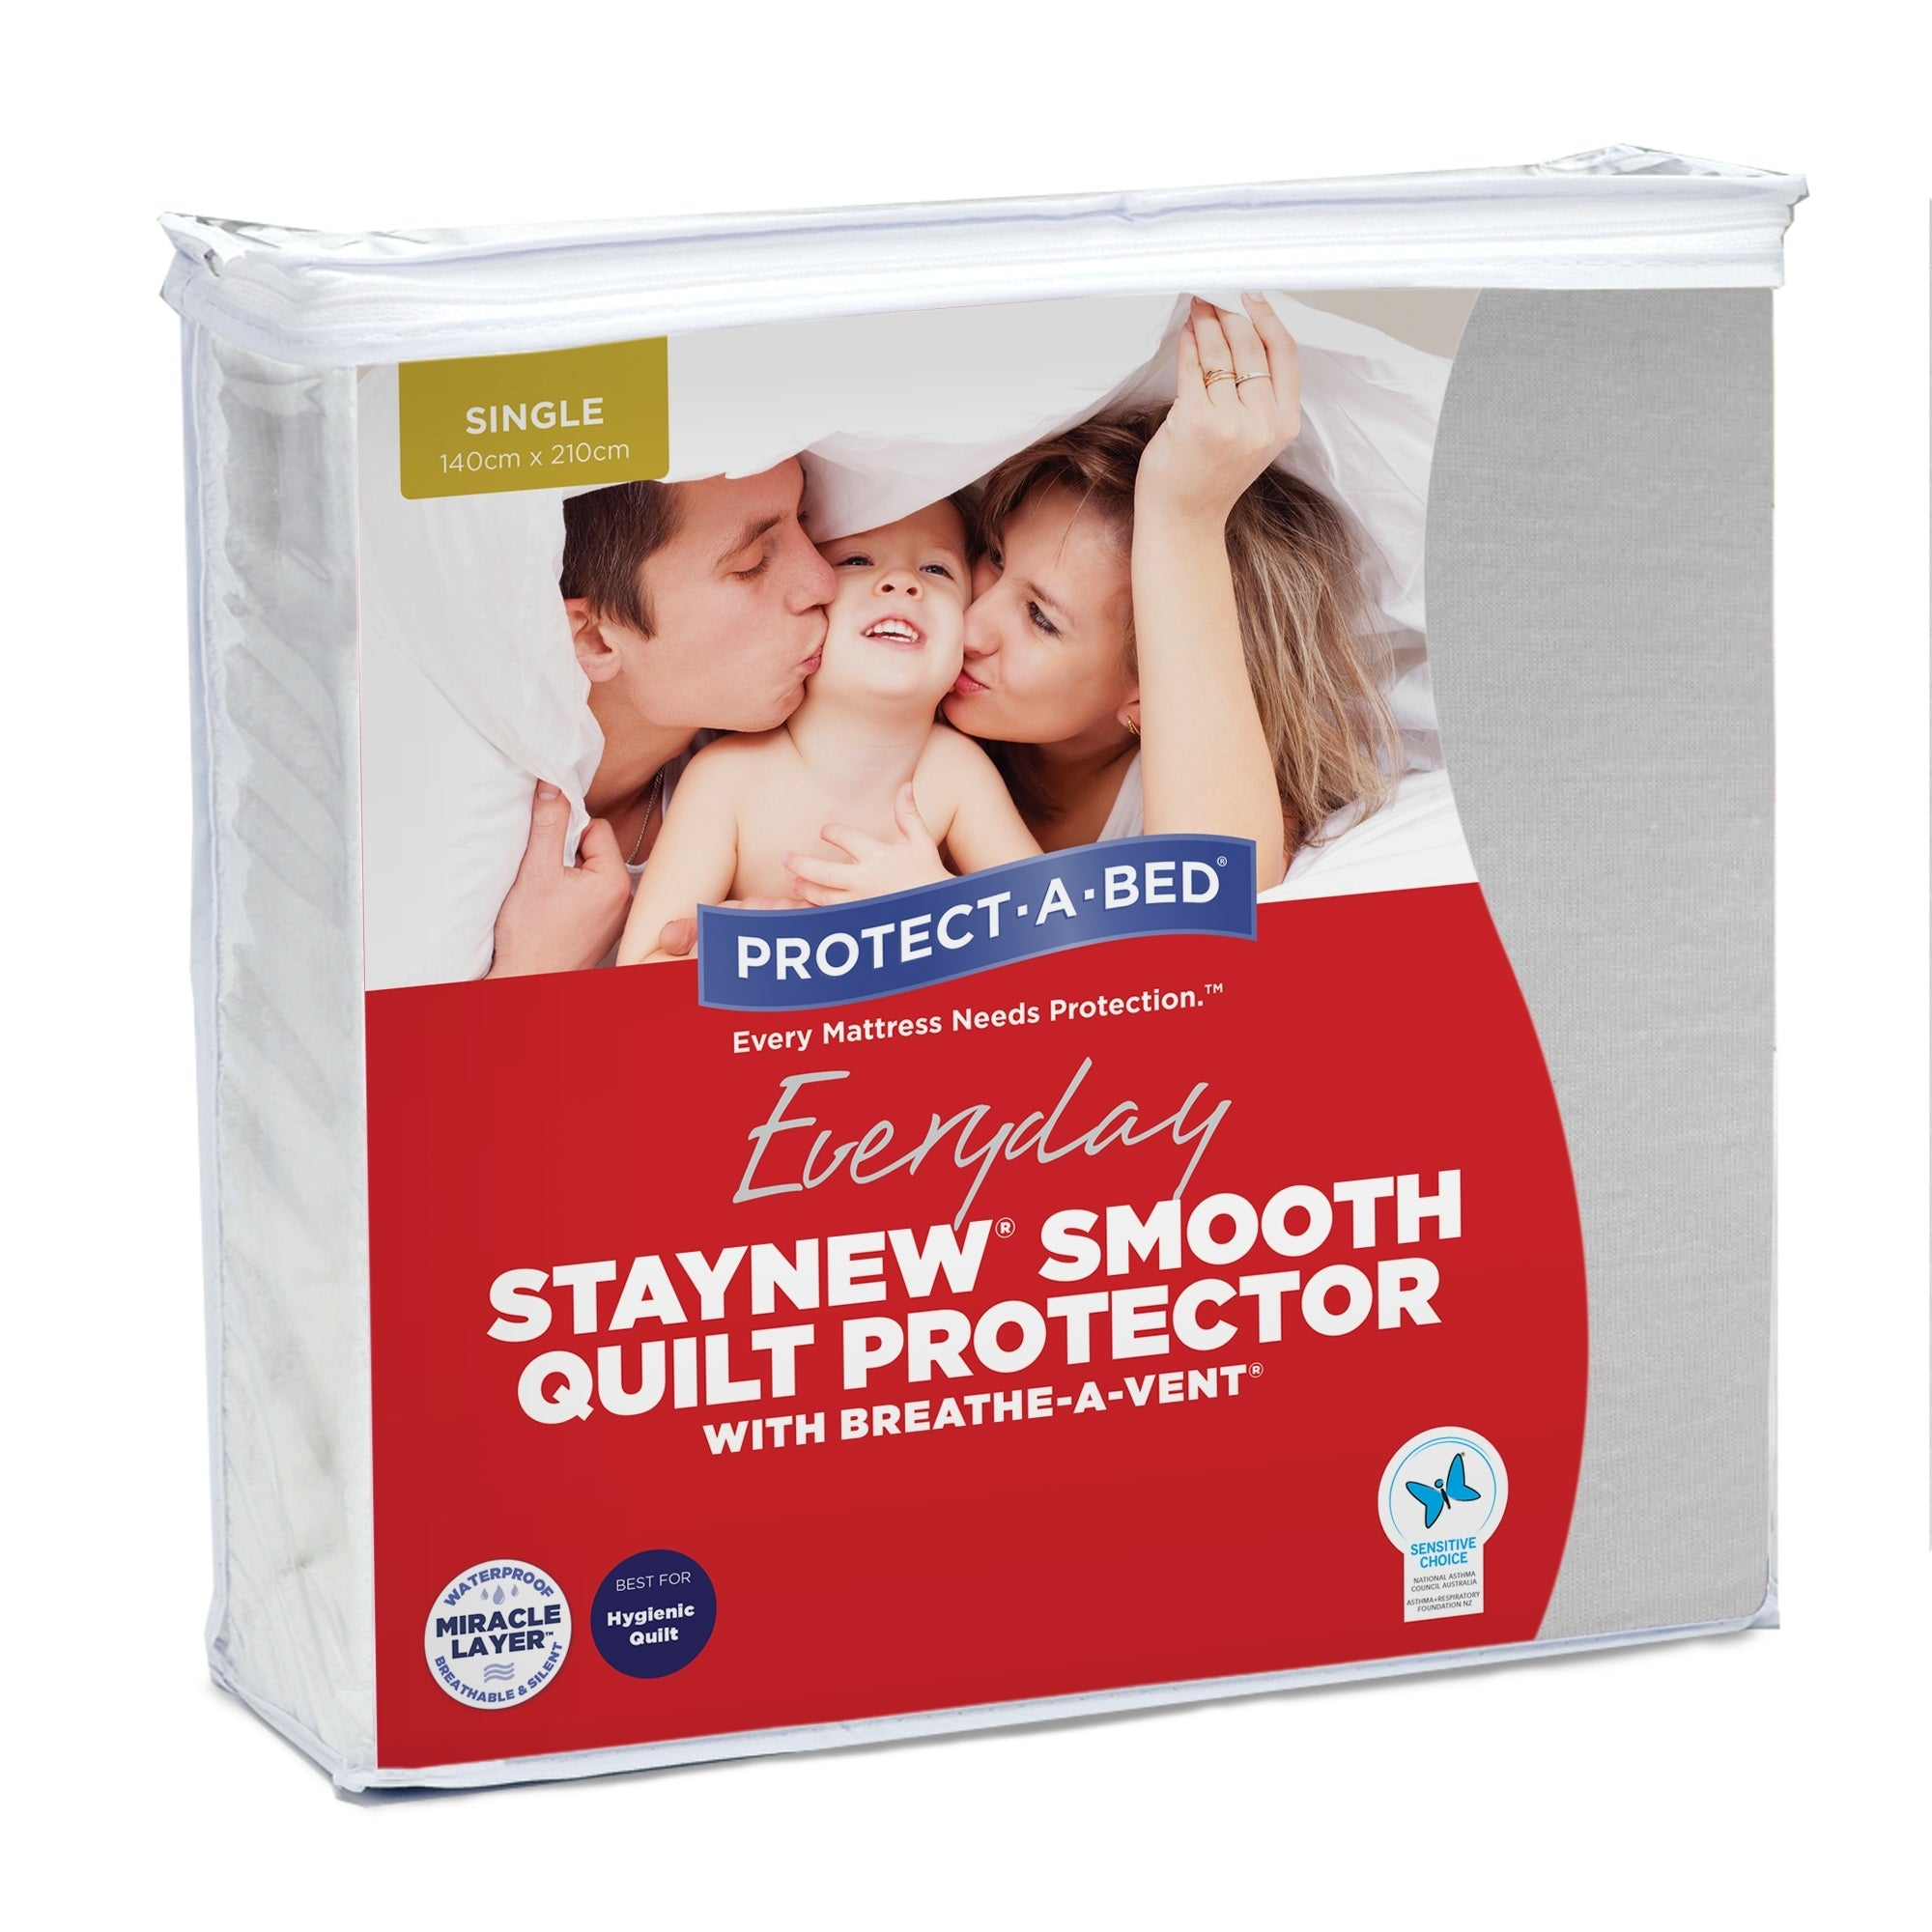 Protect-A-Bed Staynew Smooth Quilt Protector